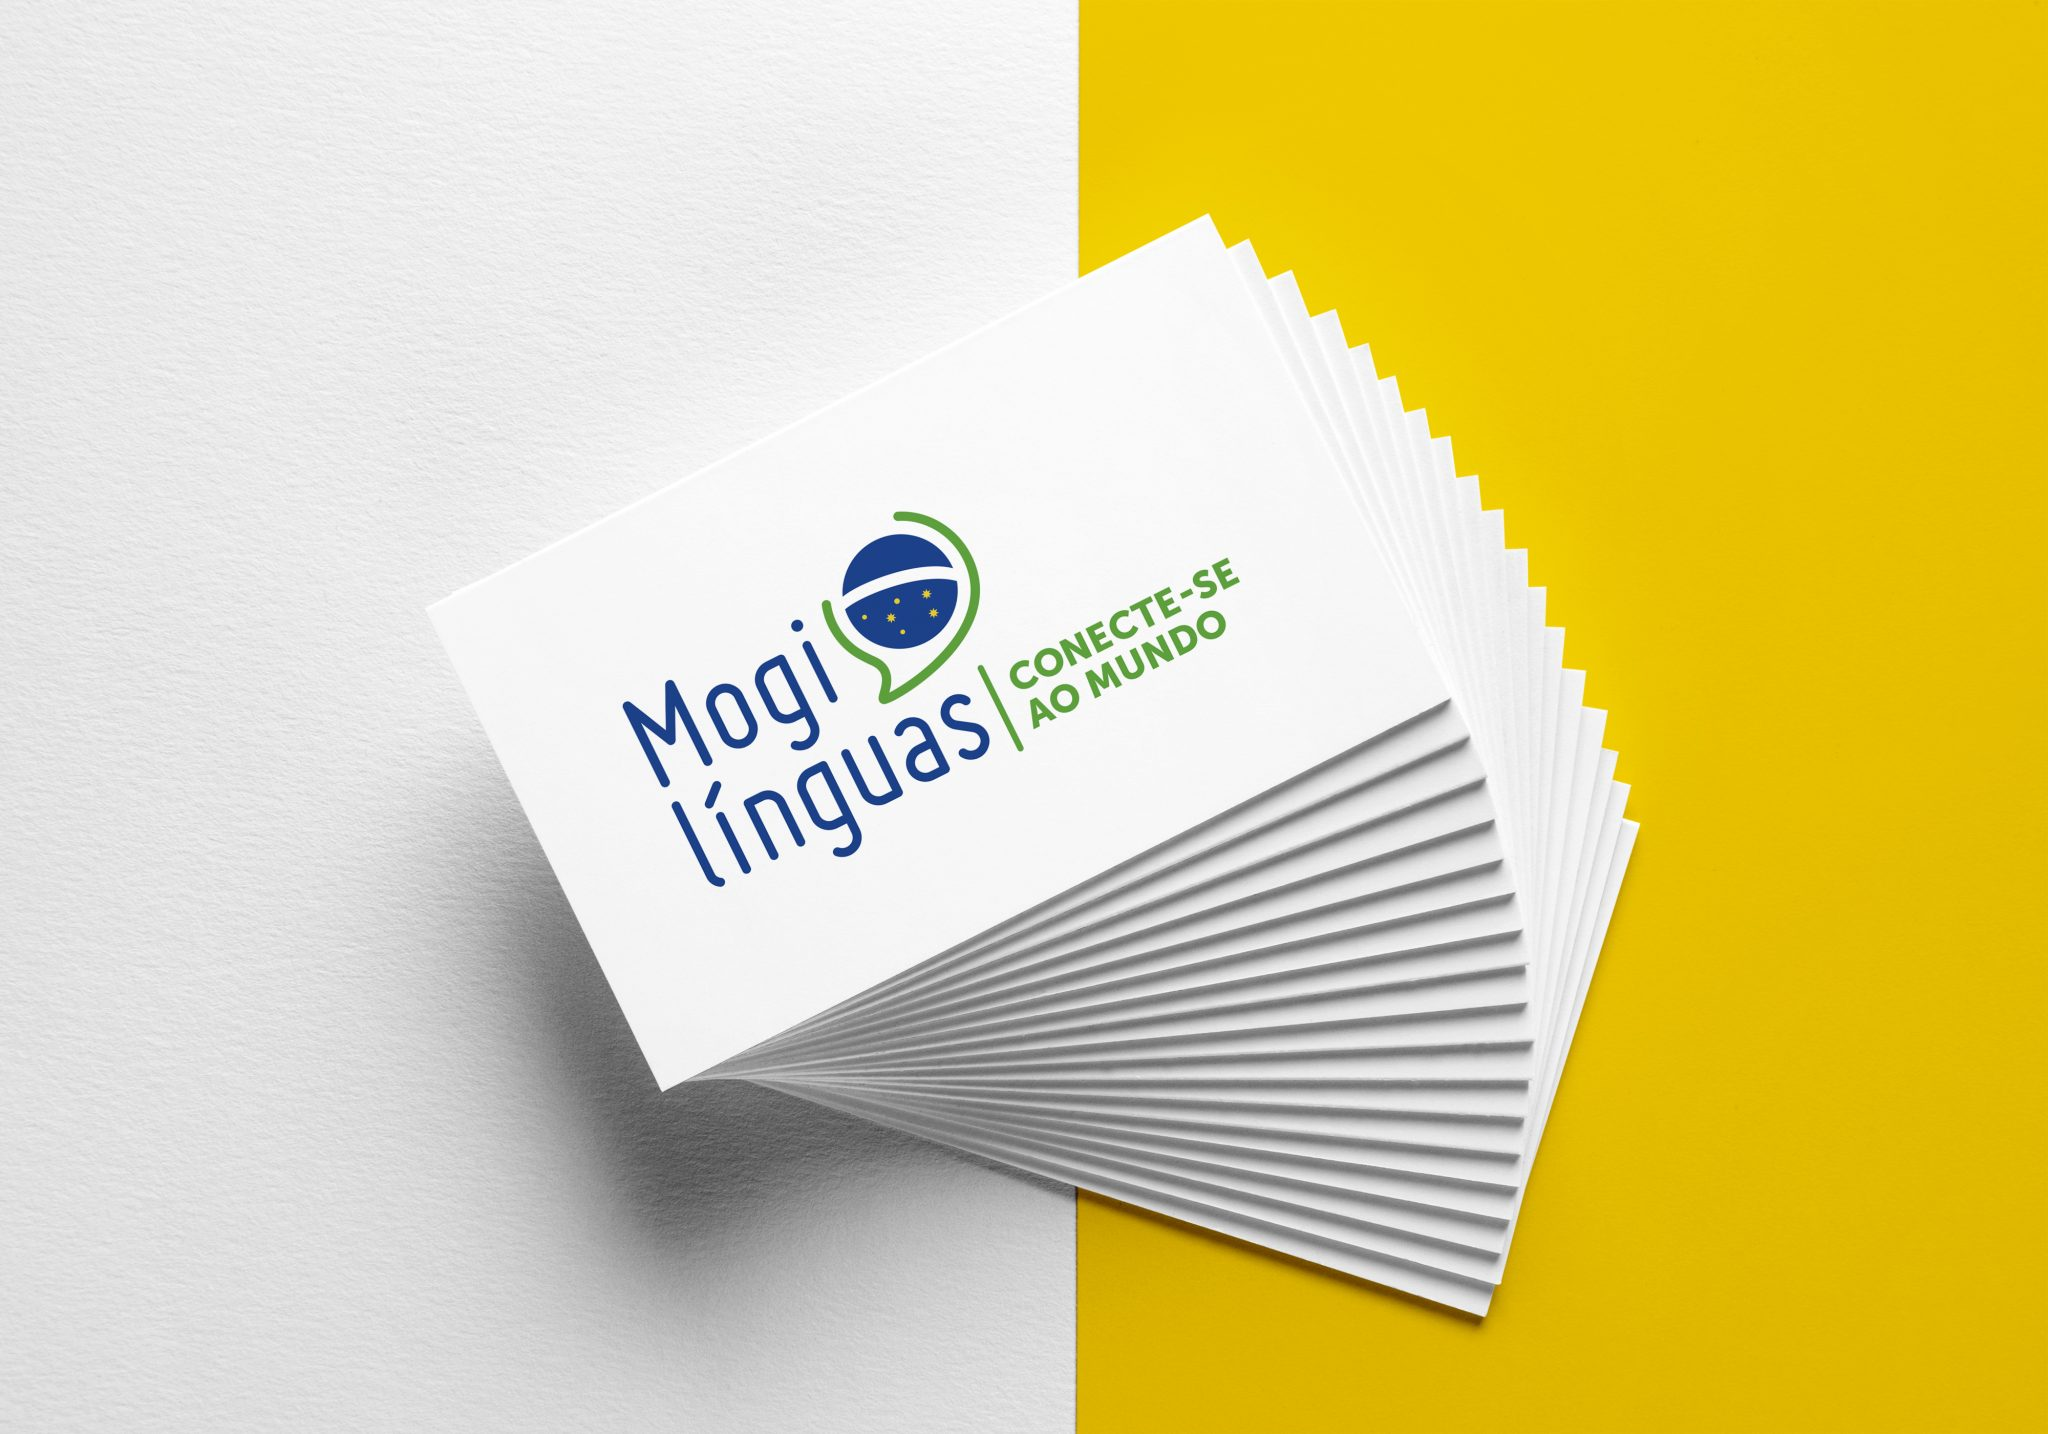 studio witvrouwen graphic design identity branding logotype logo mogilinguas business card